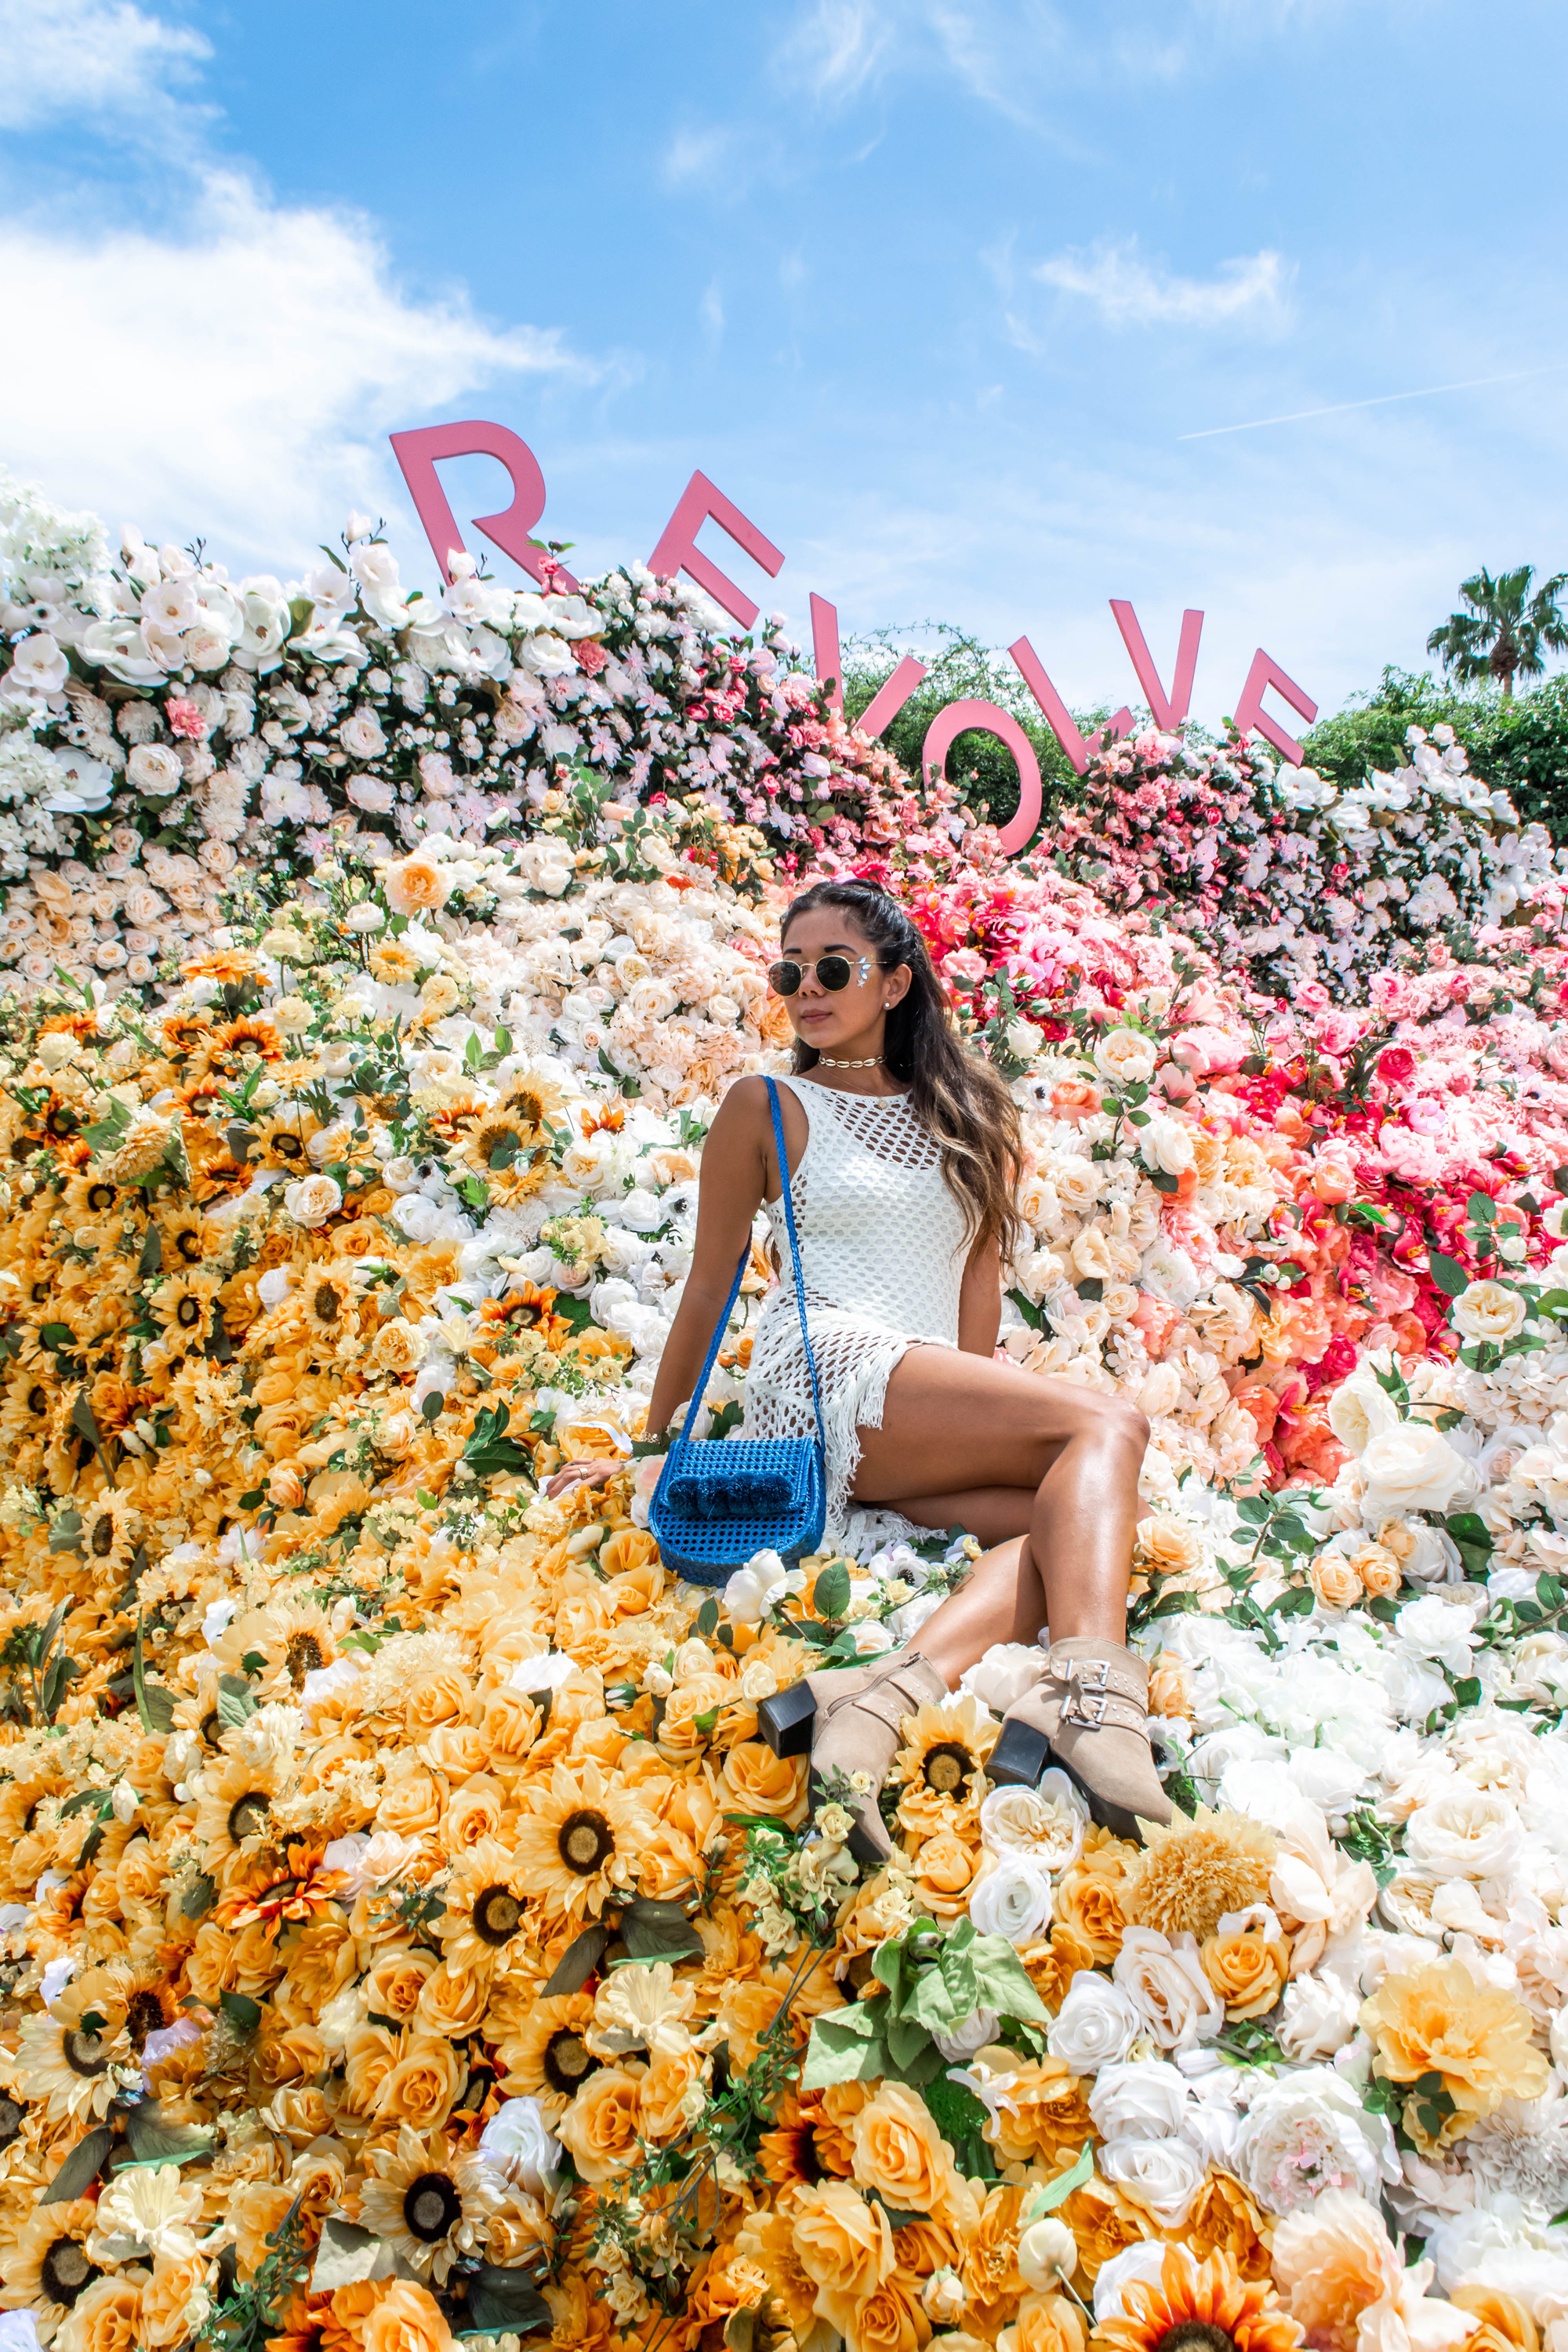 Marcy Yu Revolve Festival Party outfits Flower Instagramable spot